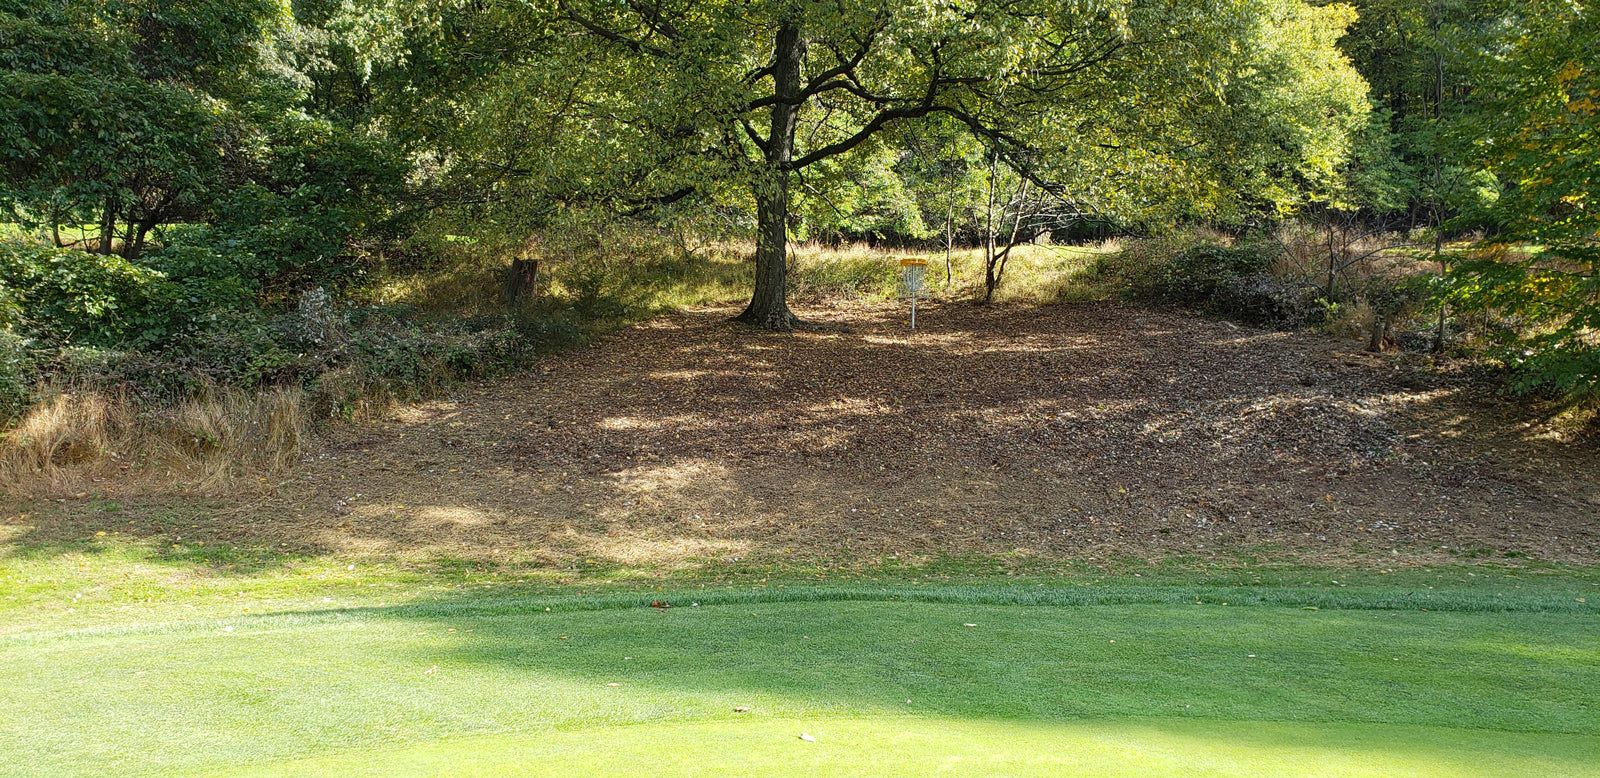 The course offers wide variety of holes and is co-designed by Simon Lizotte.